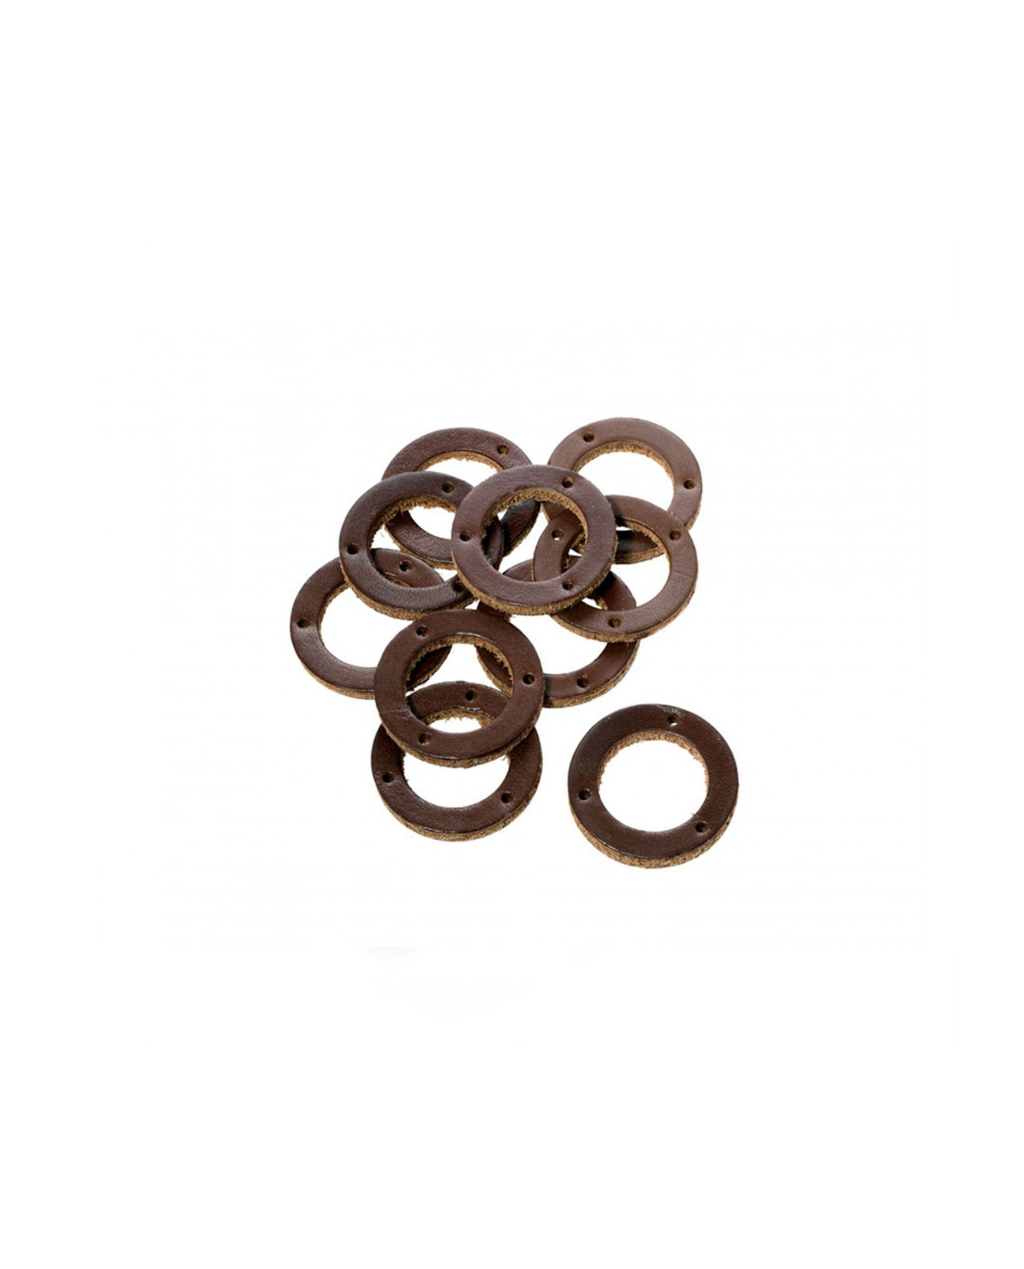 Brooks Brown Leather Ring for Handlebar Grip (10 pieces) - BYB 333